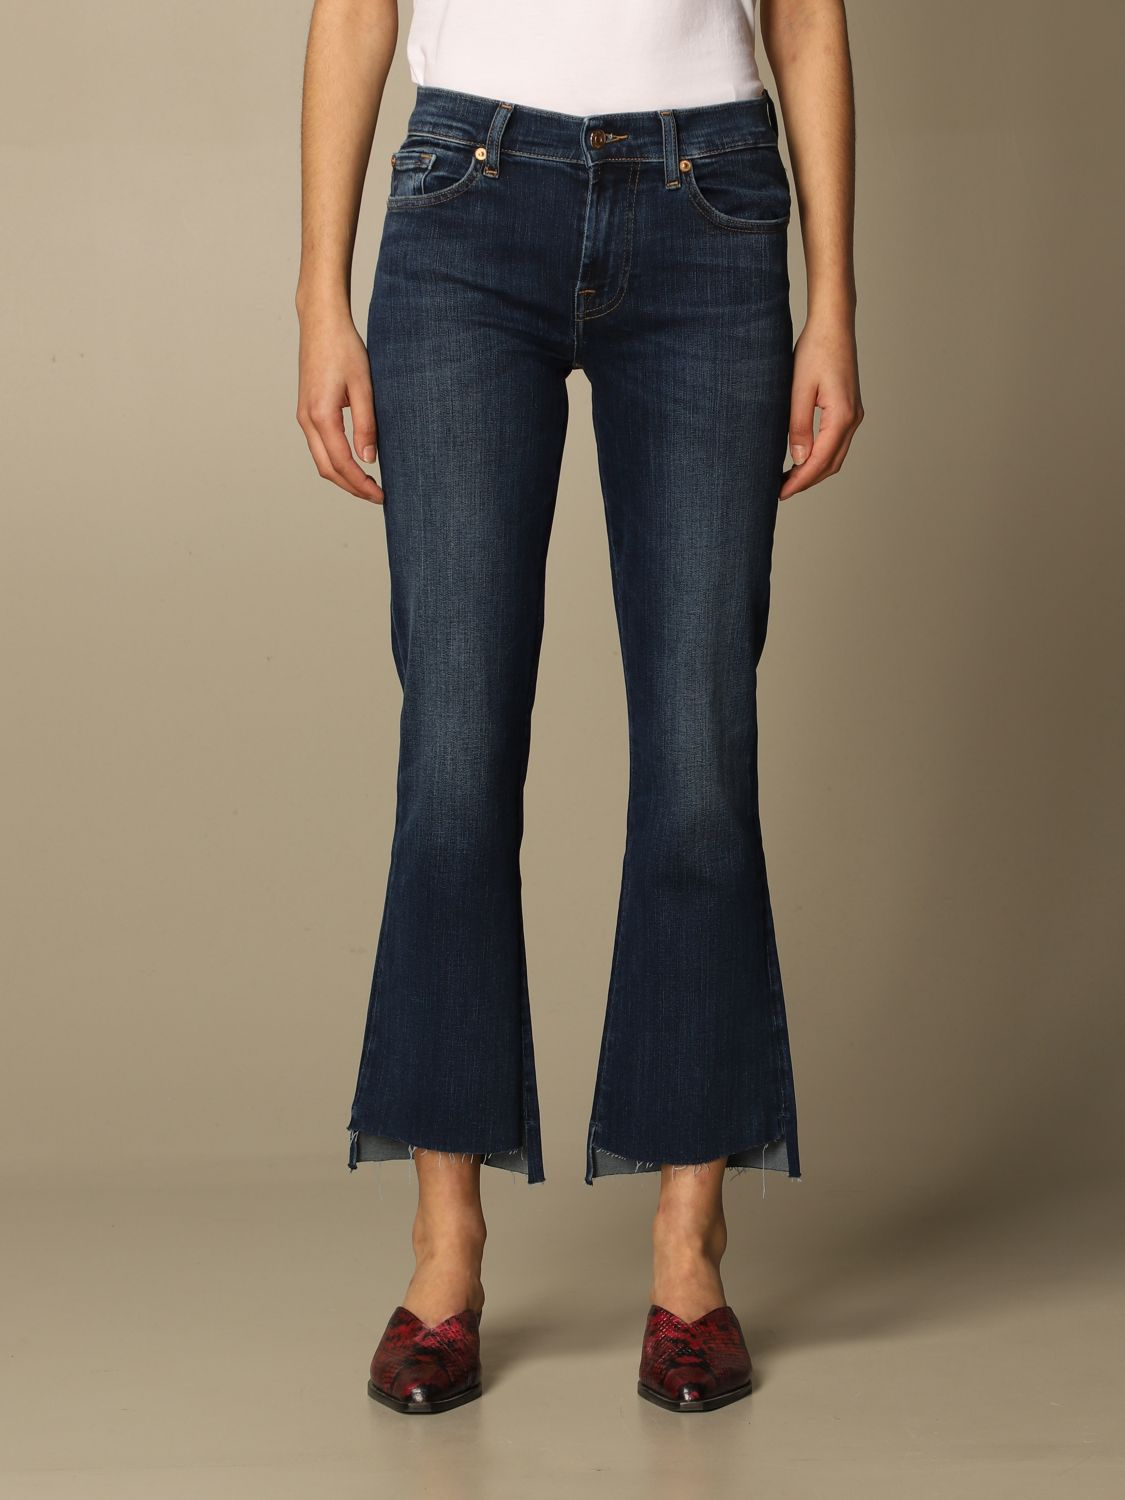 Jeans 7 For All Mankind: Jeans mujer 7 For All Mankind azul oscuro 1